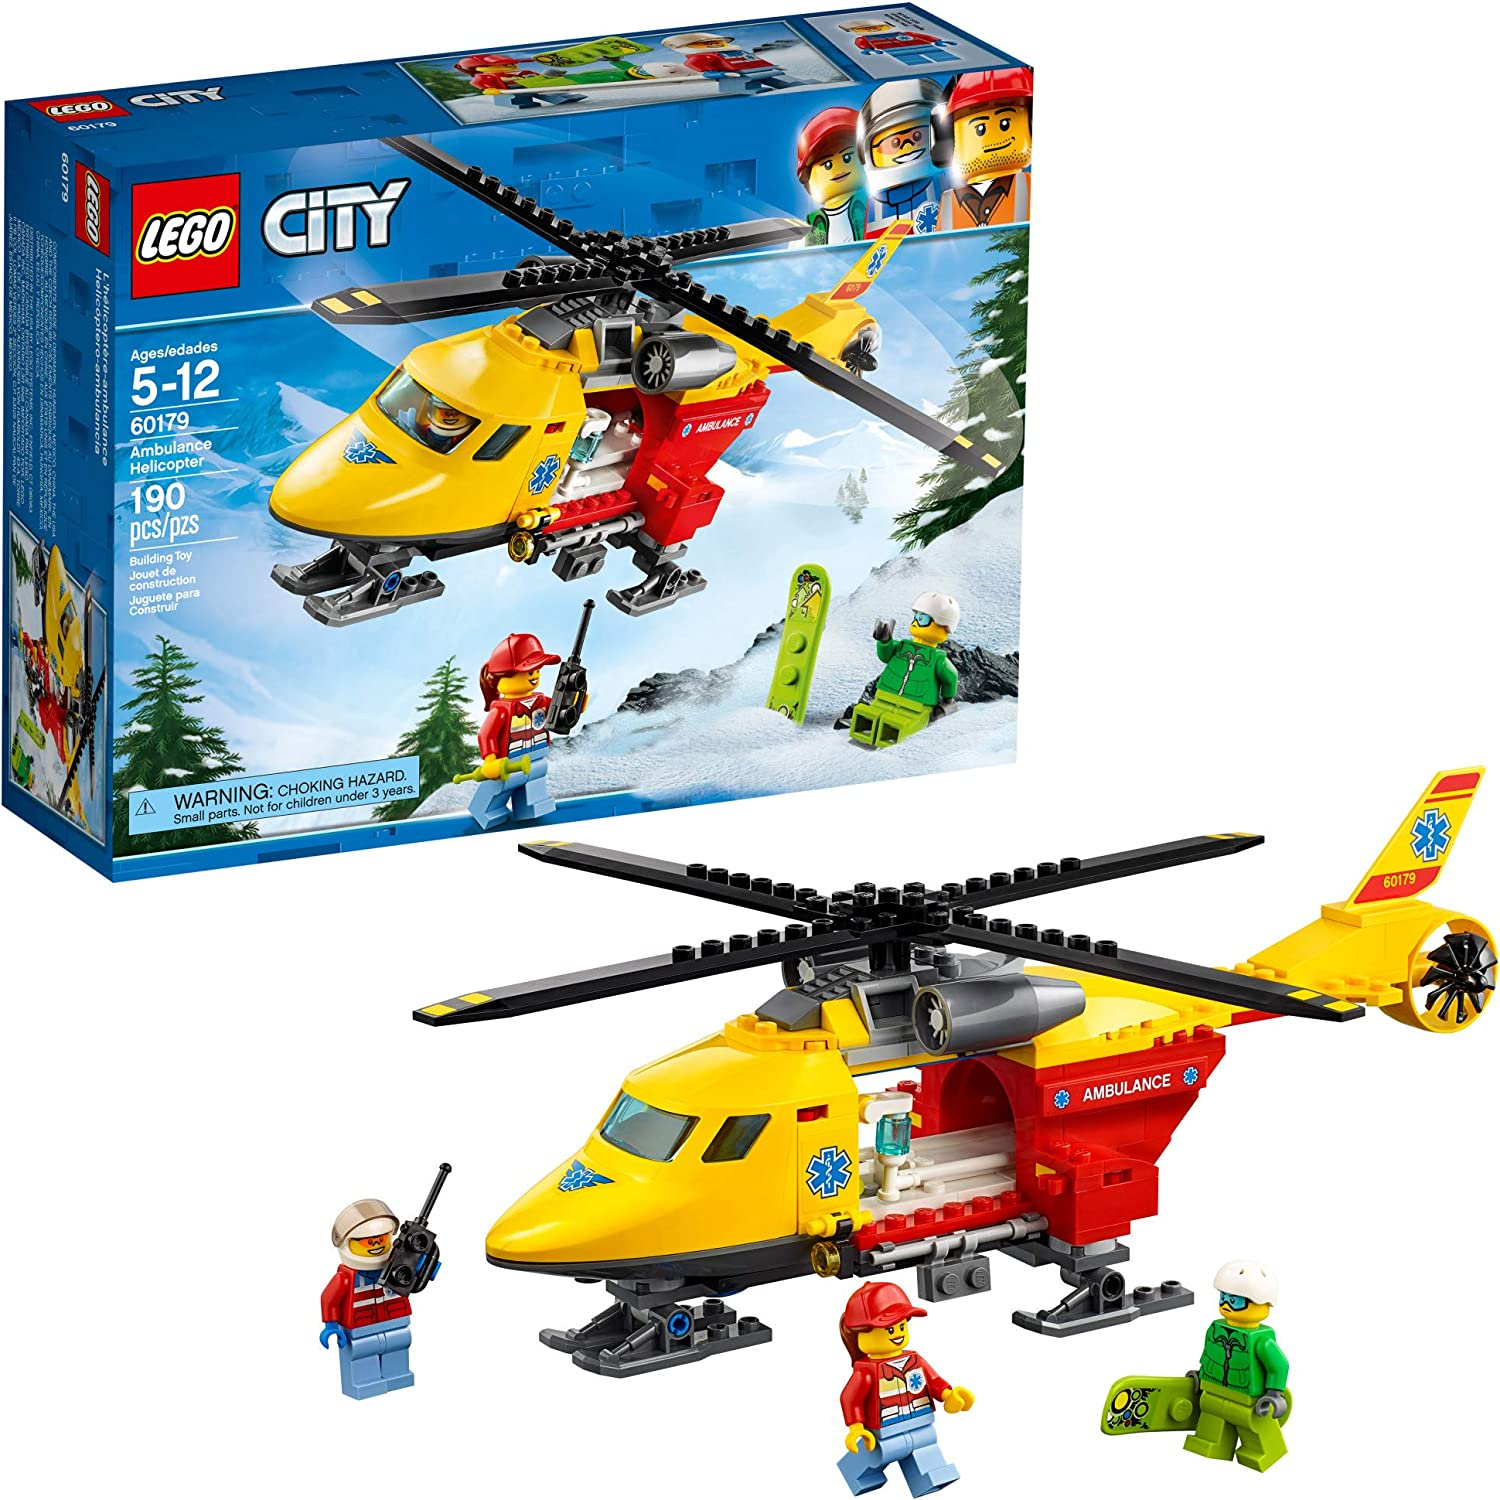 LEGO City Ambulance Helicopter 60179 Building Kit, New 2019 (190 Pieces)